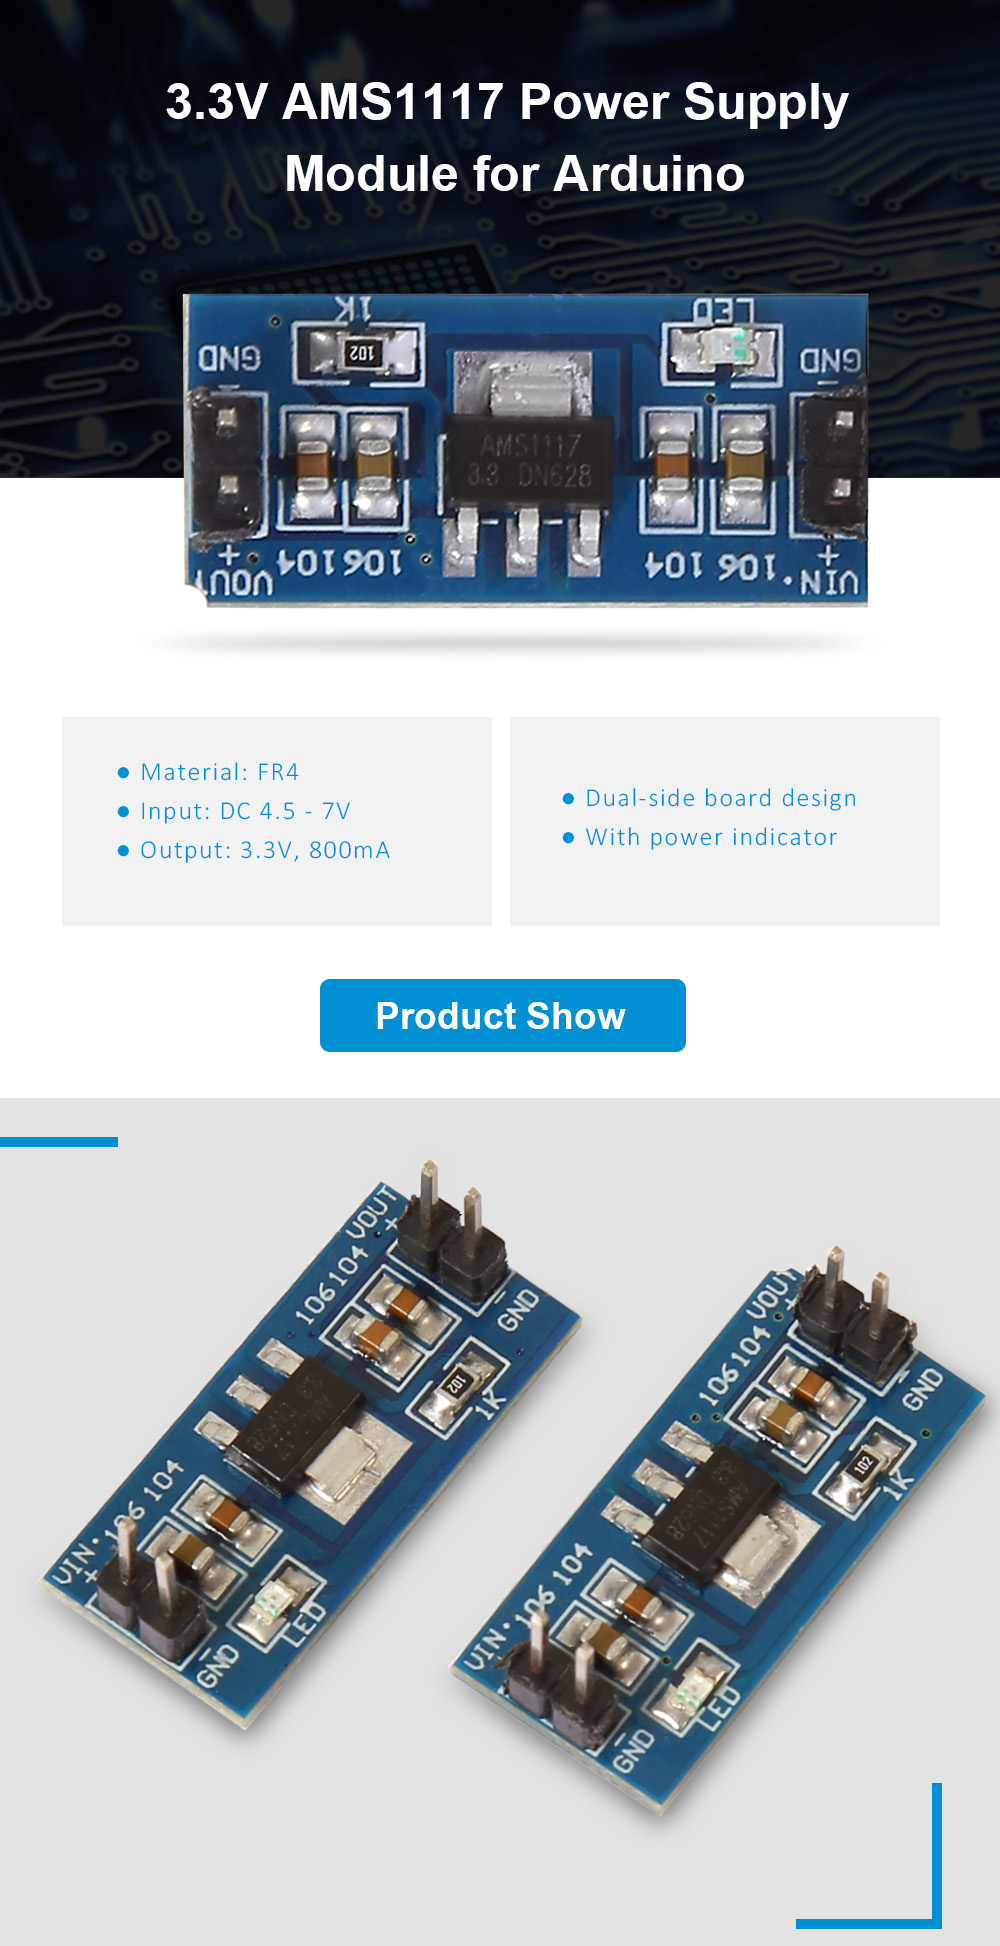 2PCS 3.3V AMS1117 Power Supply Module for Arduino Lovers